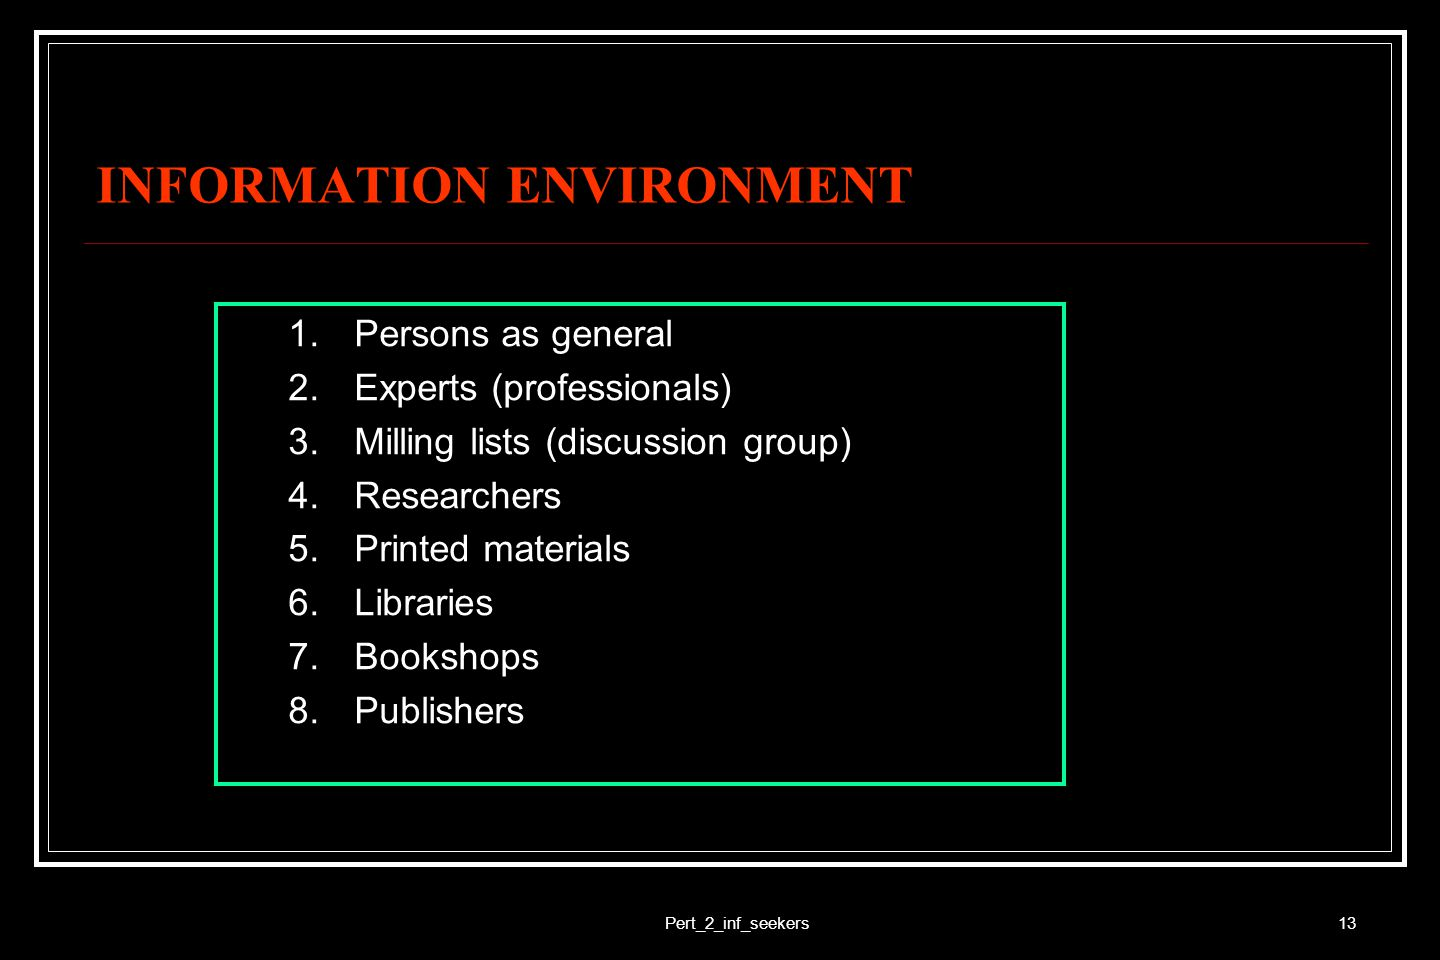 Pert_2_inf_seekers13 INFORMATION ENVIRONMENT 1.Persons as general 2.Experts (professionals) 3.Milling lists (discussion group) 4.Researchers 5.Printed